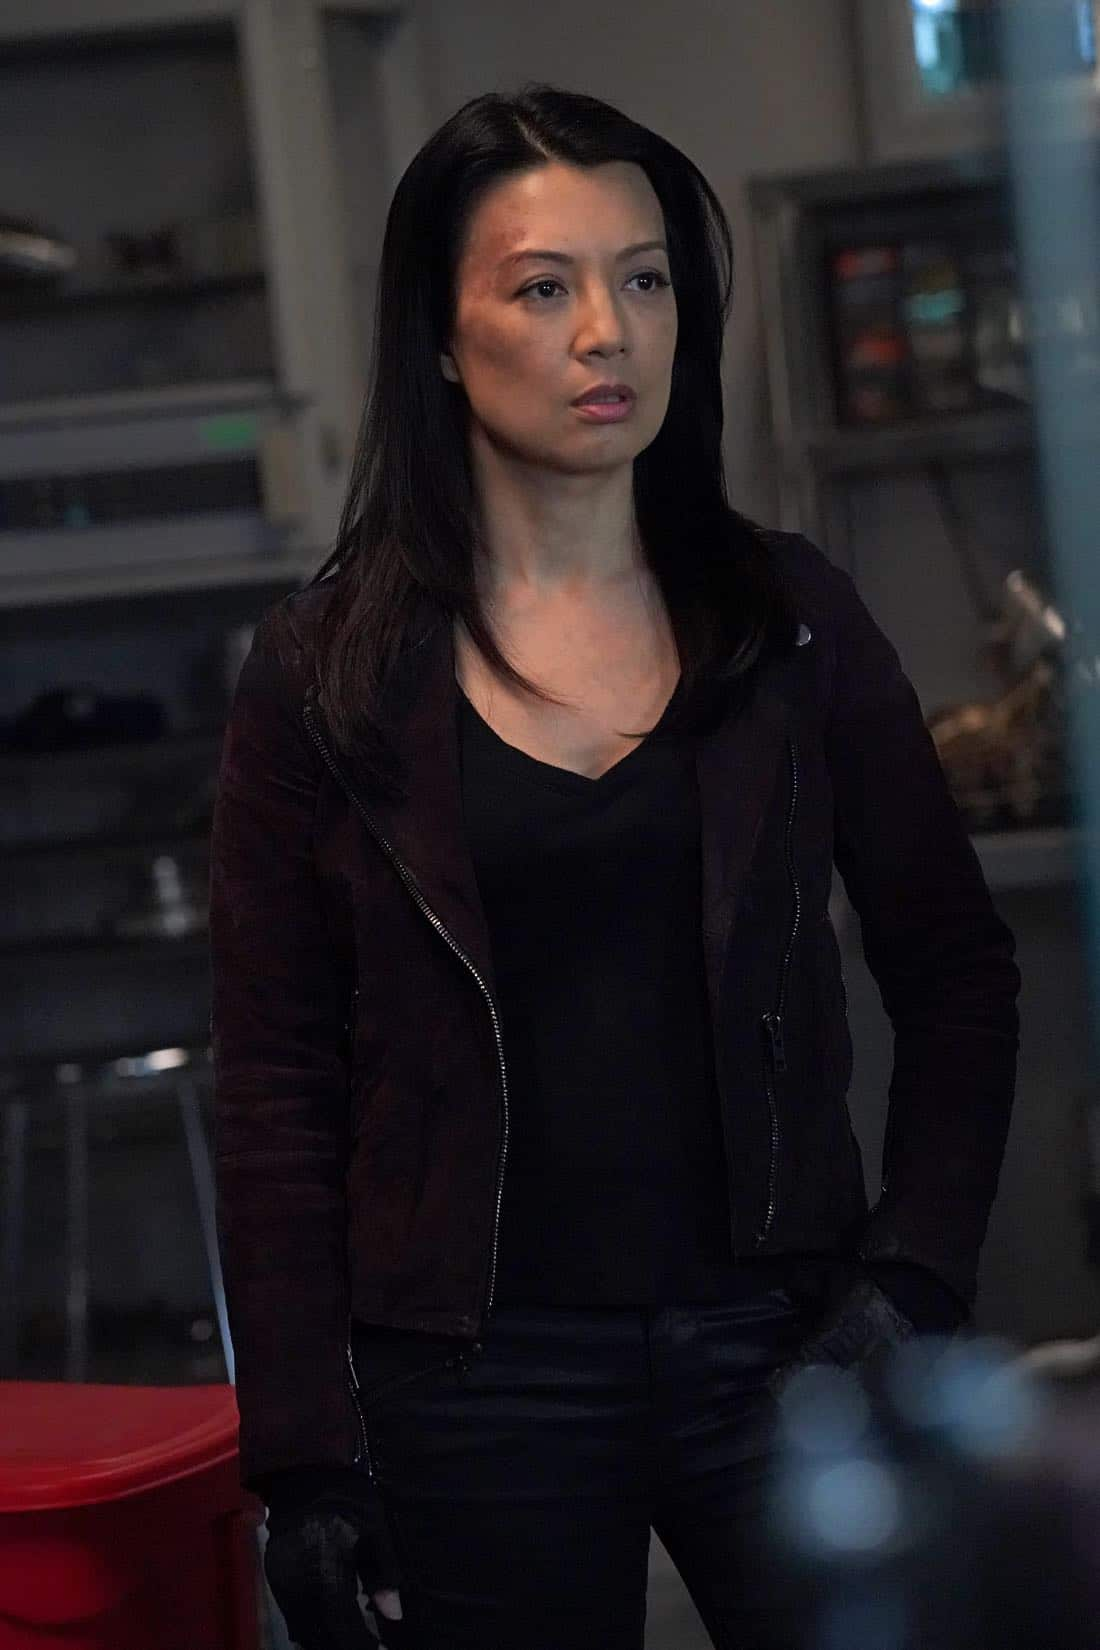 """MARVEL'S AGENTS OF S.H.I.E.L.D. - """"All the Comforts of Home"""" - Coulson and team set out to rewrite the course of humanity's fate, but they're unaware that their efforts will dramatically change one S.H.I.E.L.D agent's life, on """"Marvel's Agents of S.H.I.E.L.D.,"""" FRIDAY, MARCH 2 (9:01-10:01 p.m. EST), on The ABC Television Network. (ABC/Byron Cohen) MING-NA WEN"""